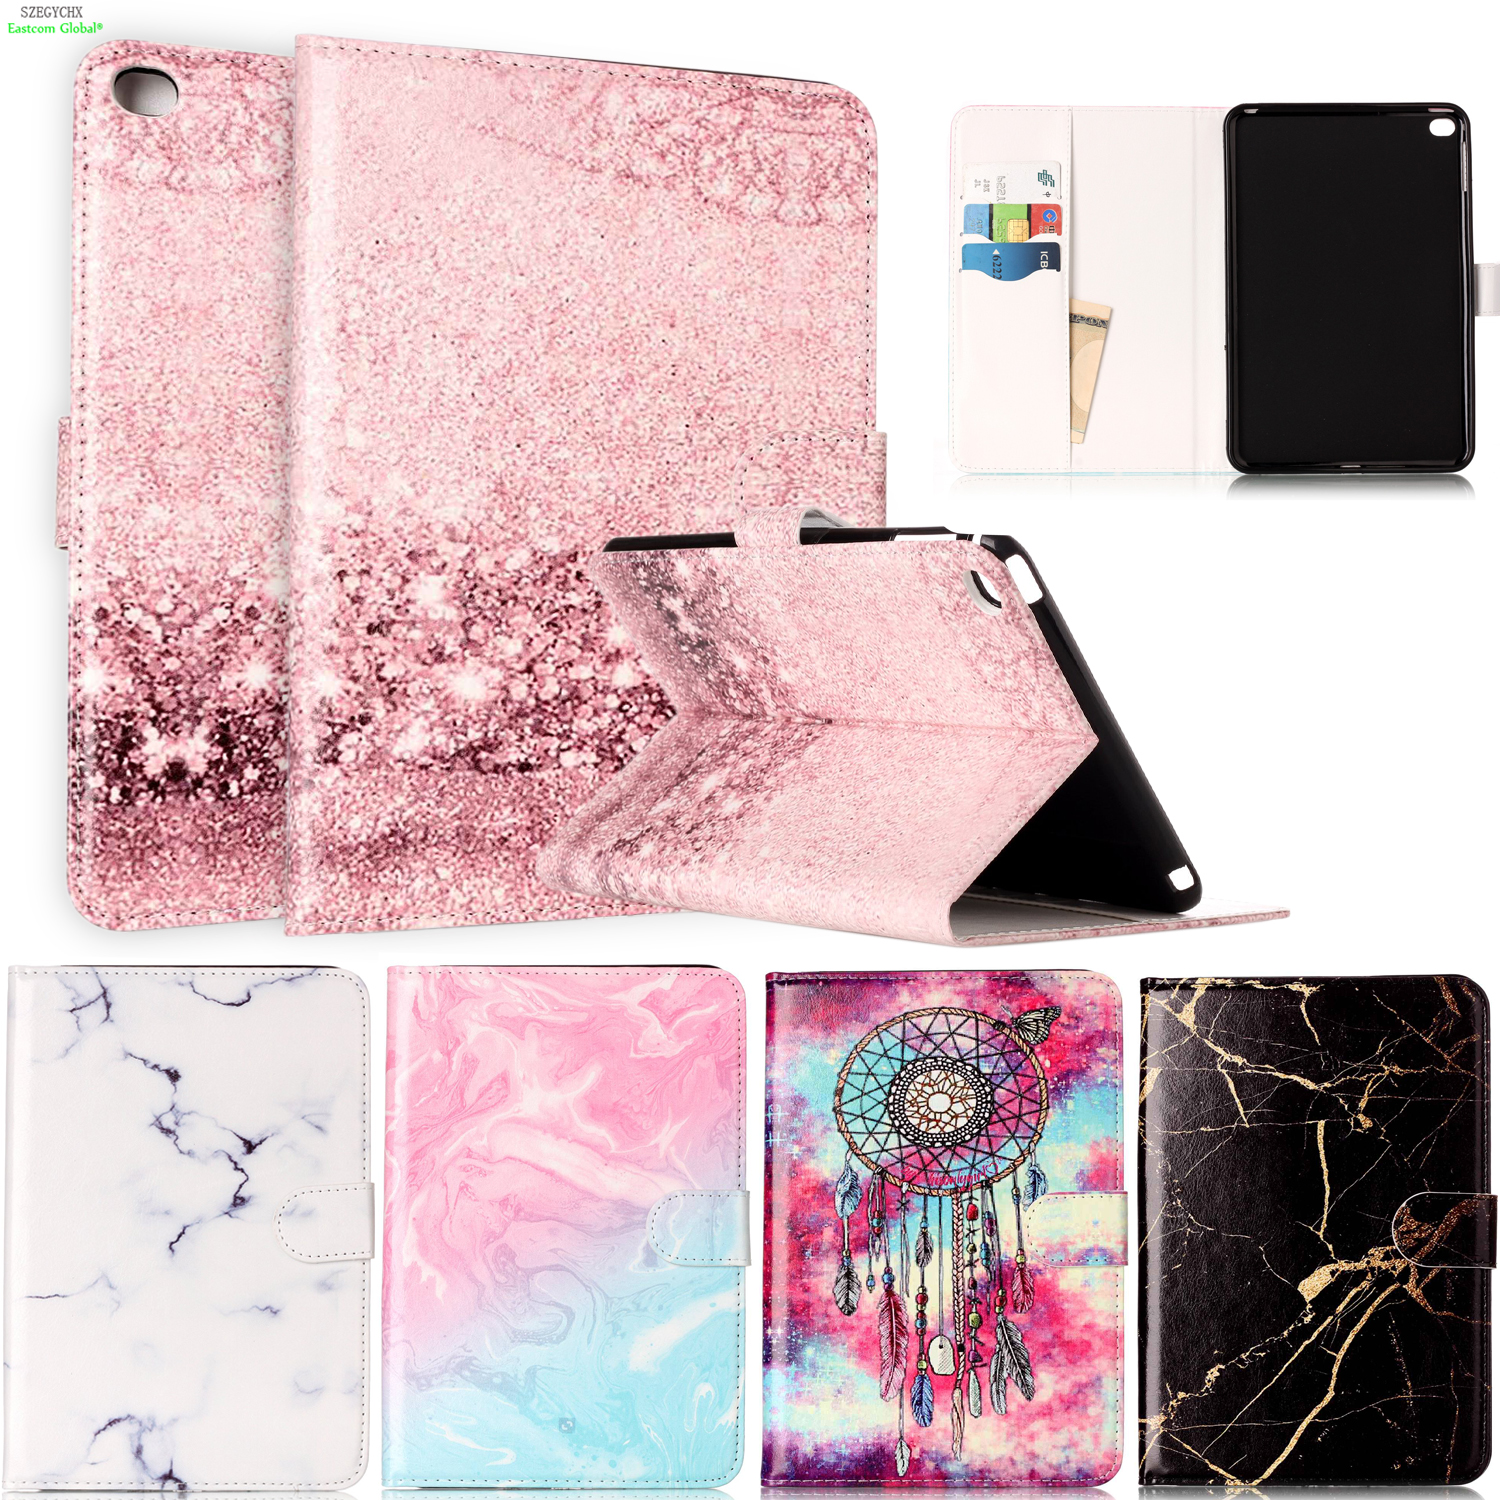 Marble Pattern PU Leather Flip Case For iPad mini 4 Case Smart Cover For iPad 7.9 inch Tablet Stand Original Ultra Slim Shell